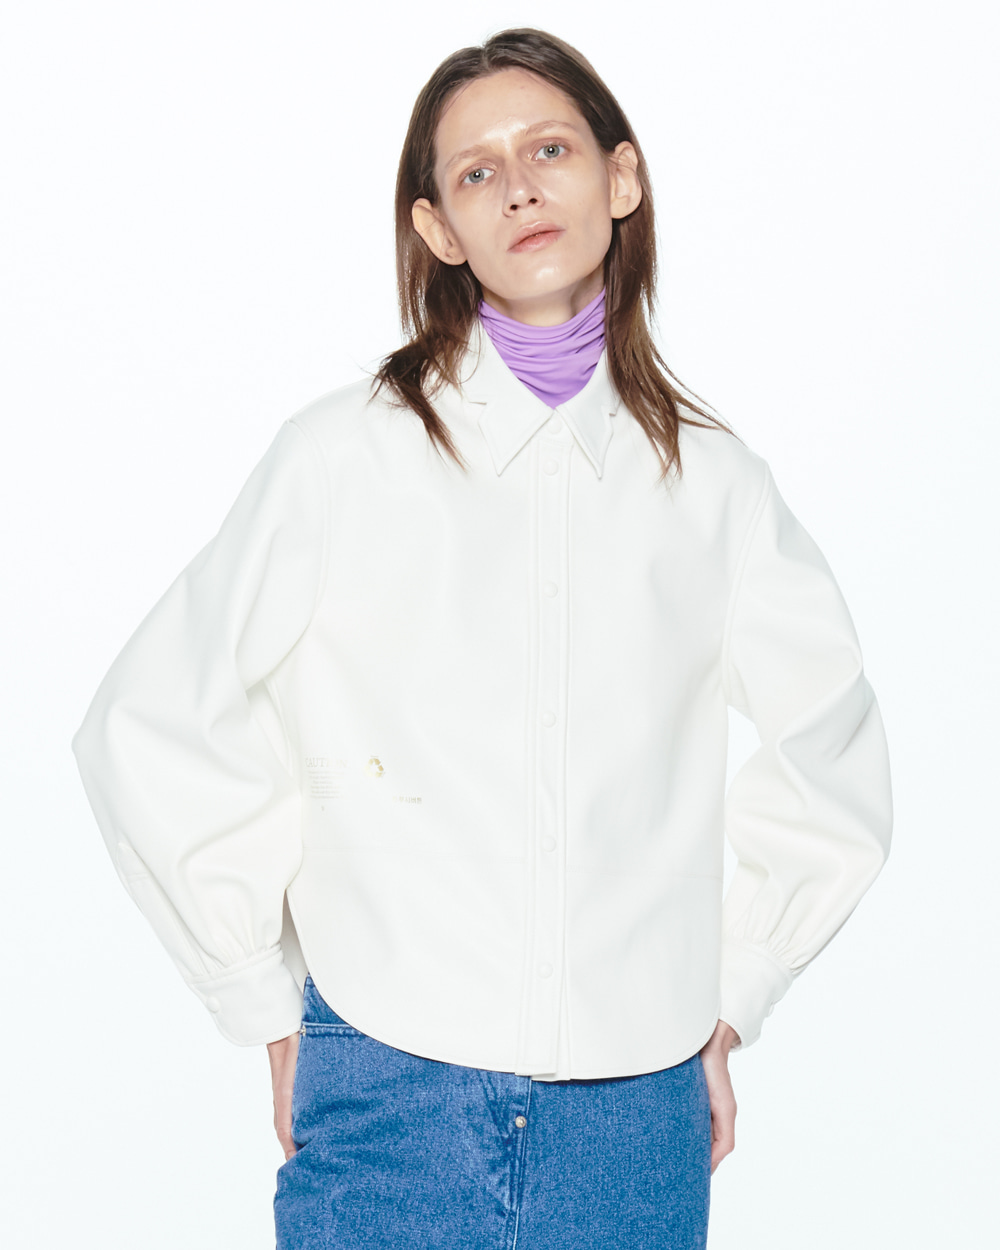 PF20 WHITE LEATHER SHIRT